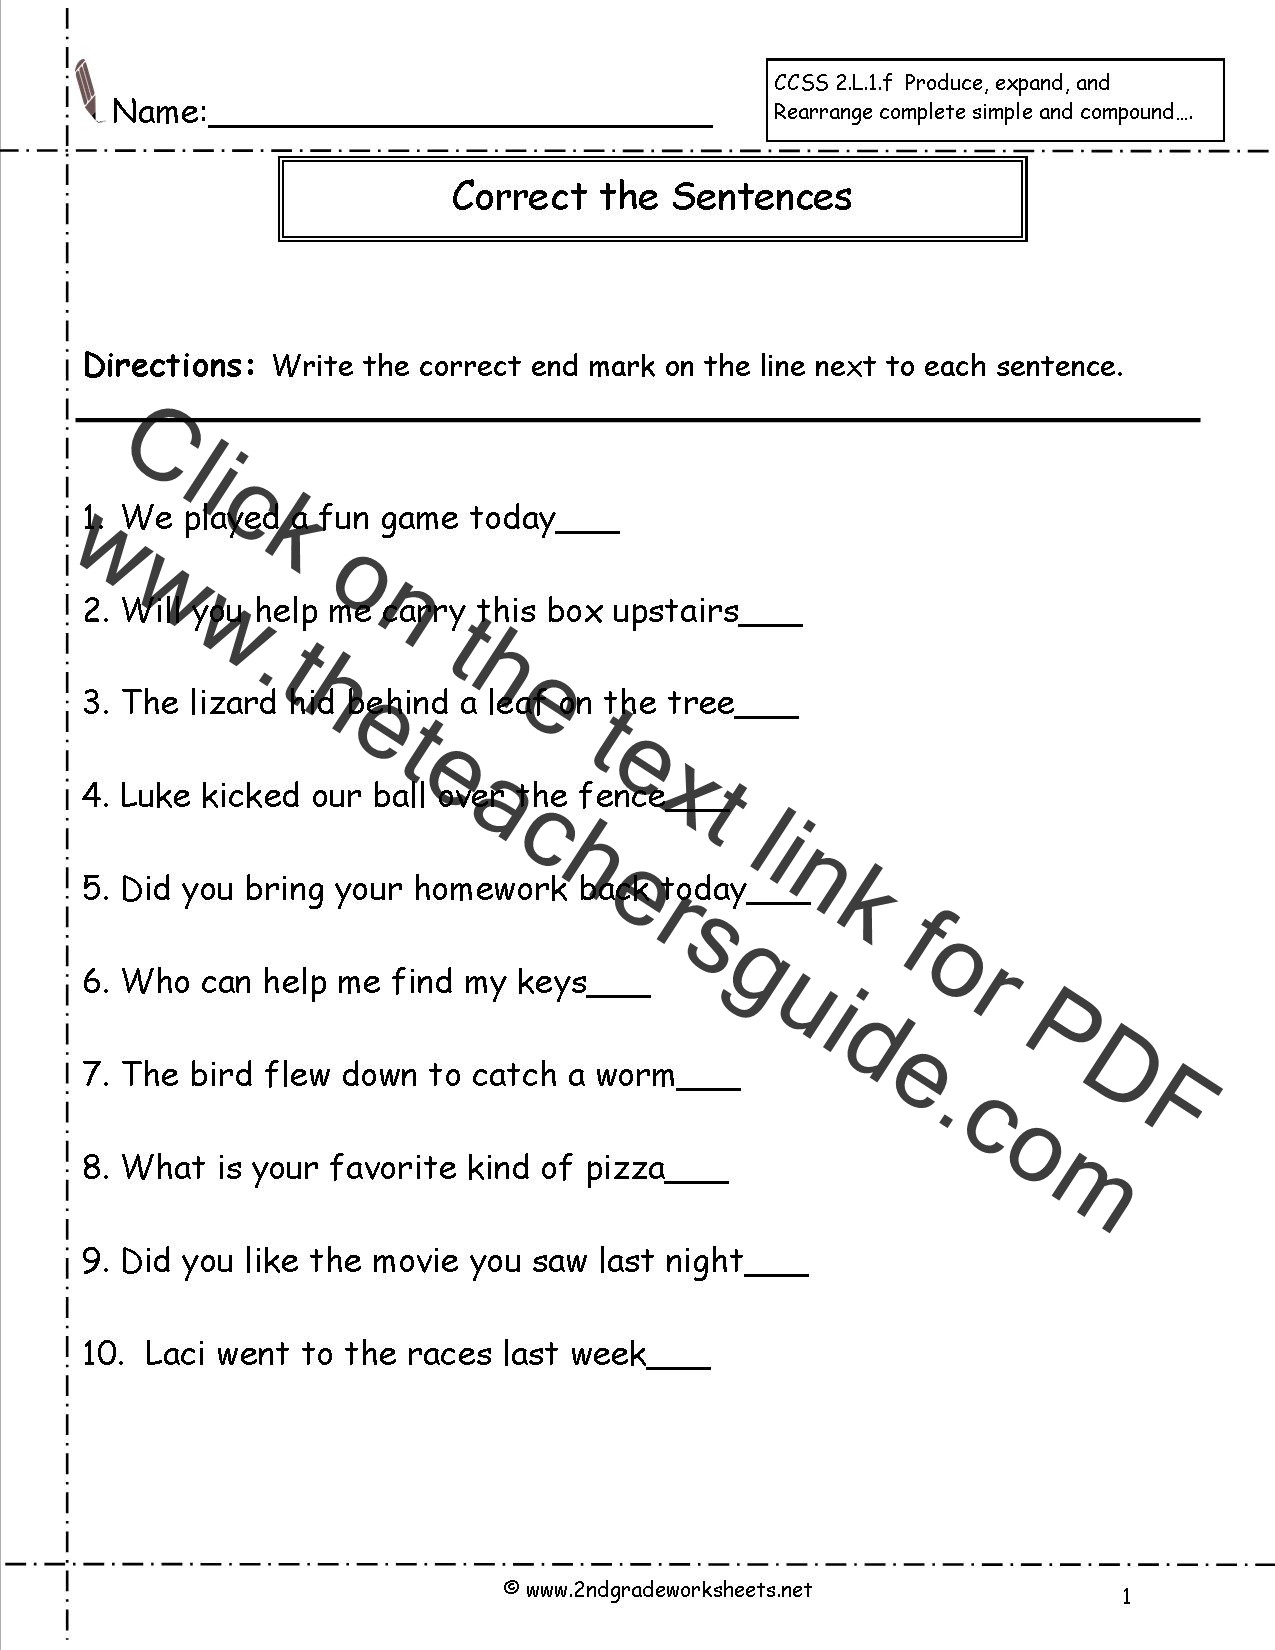 Sentence Correction Worksheets 2nd Grade Second Grade Sentences Worksheets Ccss 2 L 1 F Worksheets